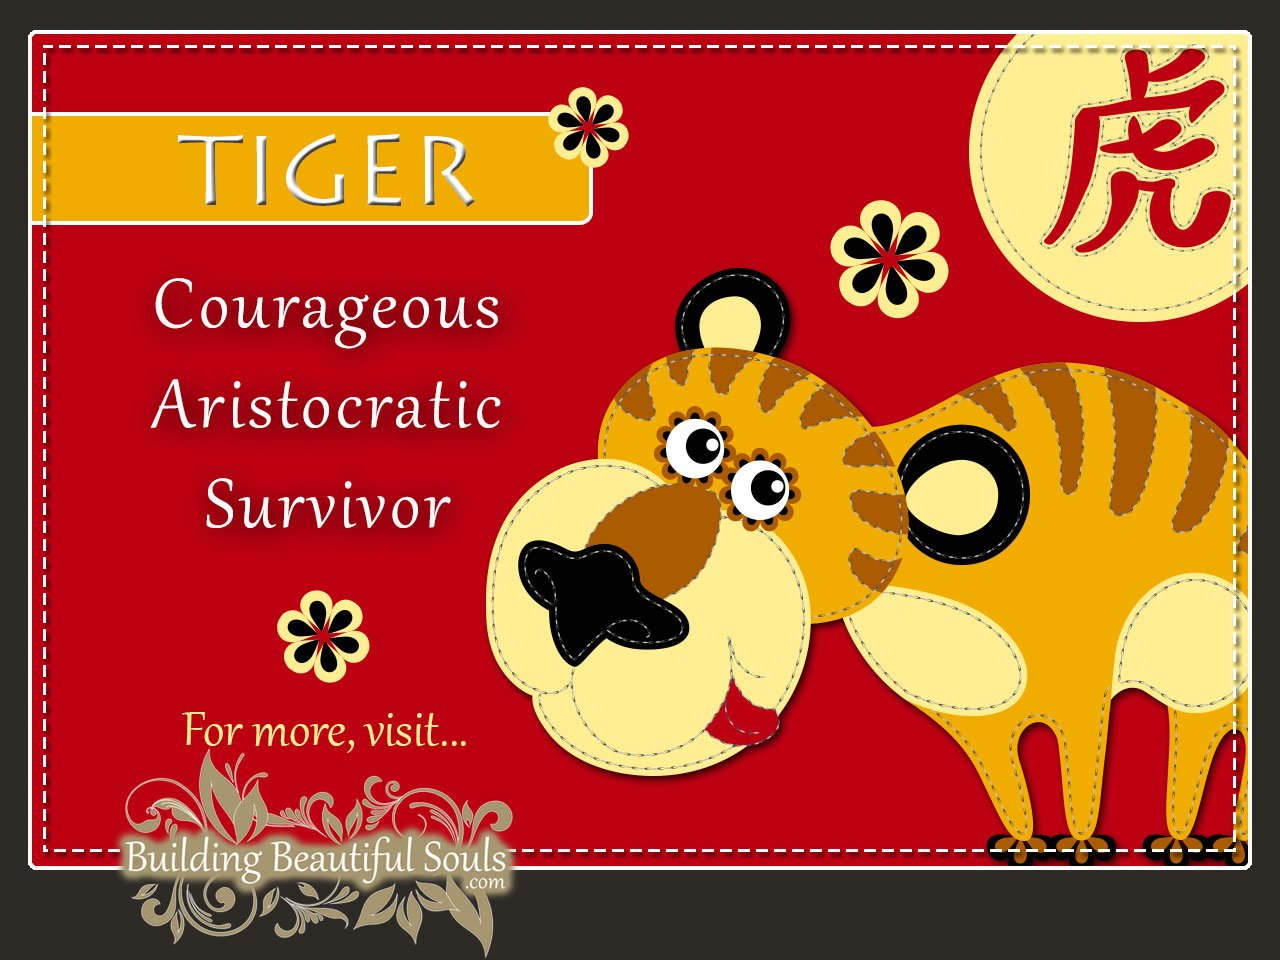 chinese zodiac tiger year of the tiger funny horoscopes funny zodiac signs - Chinese New Year Animals Meanings